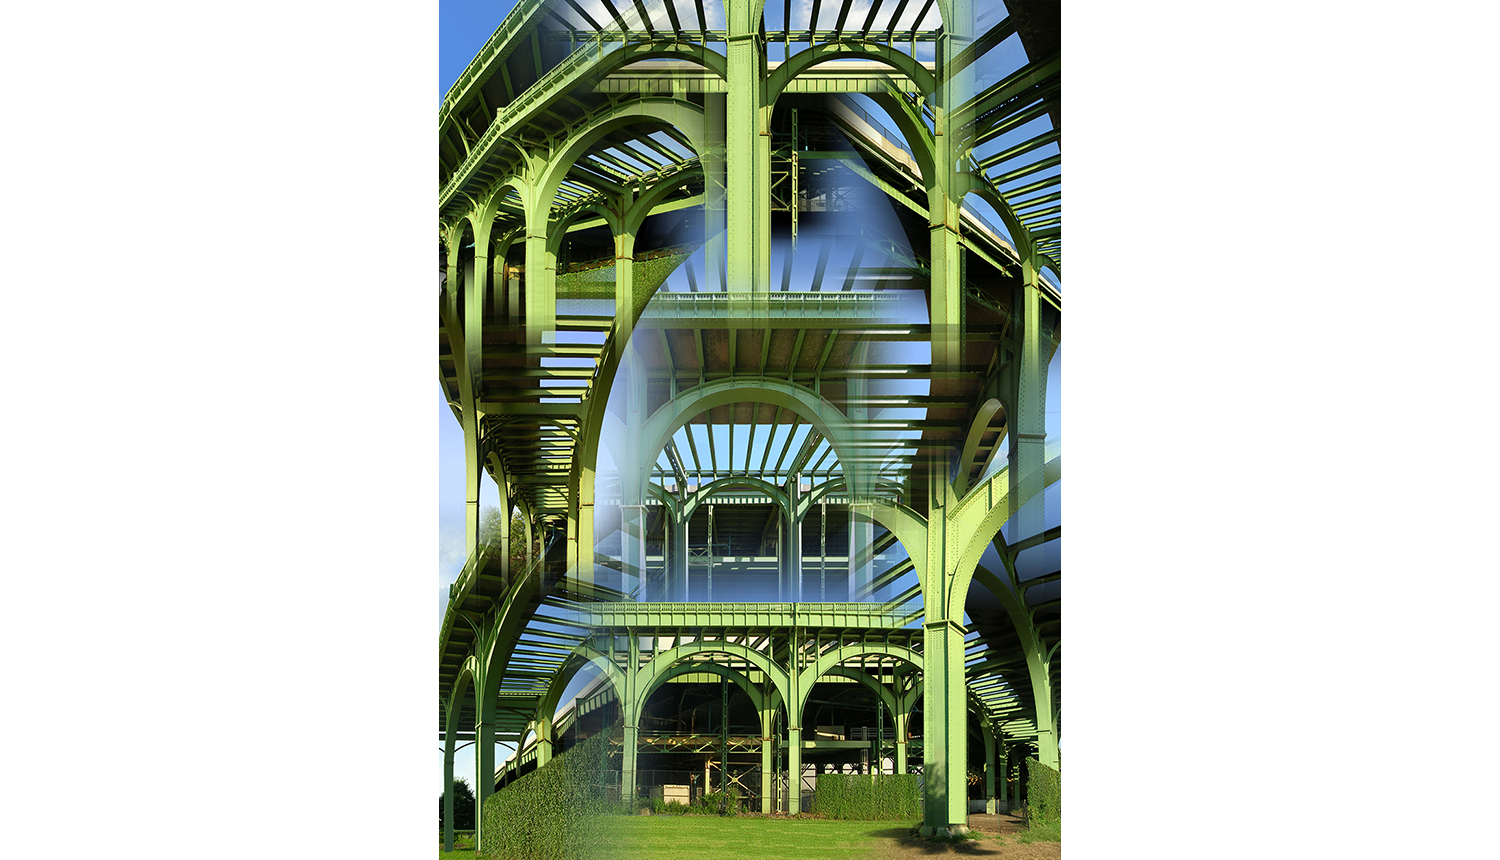 Green Arches,  2014, Digital print on paper, 40 x 55""